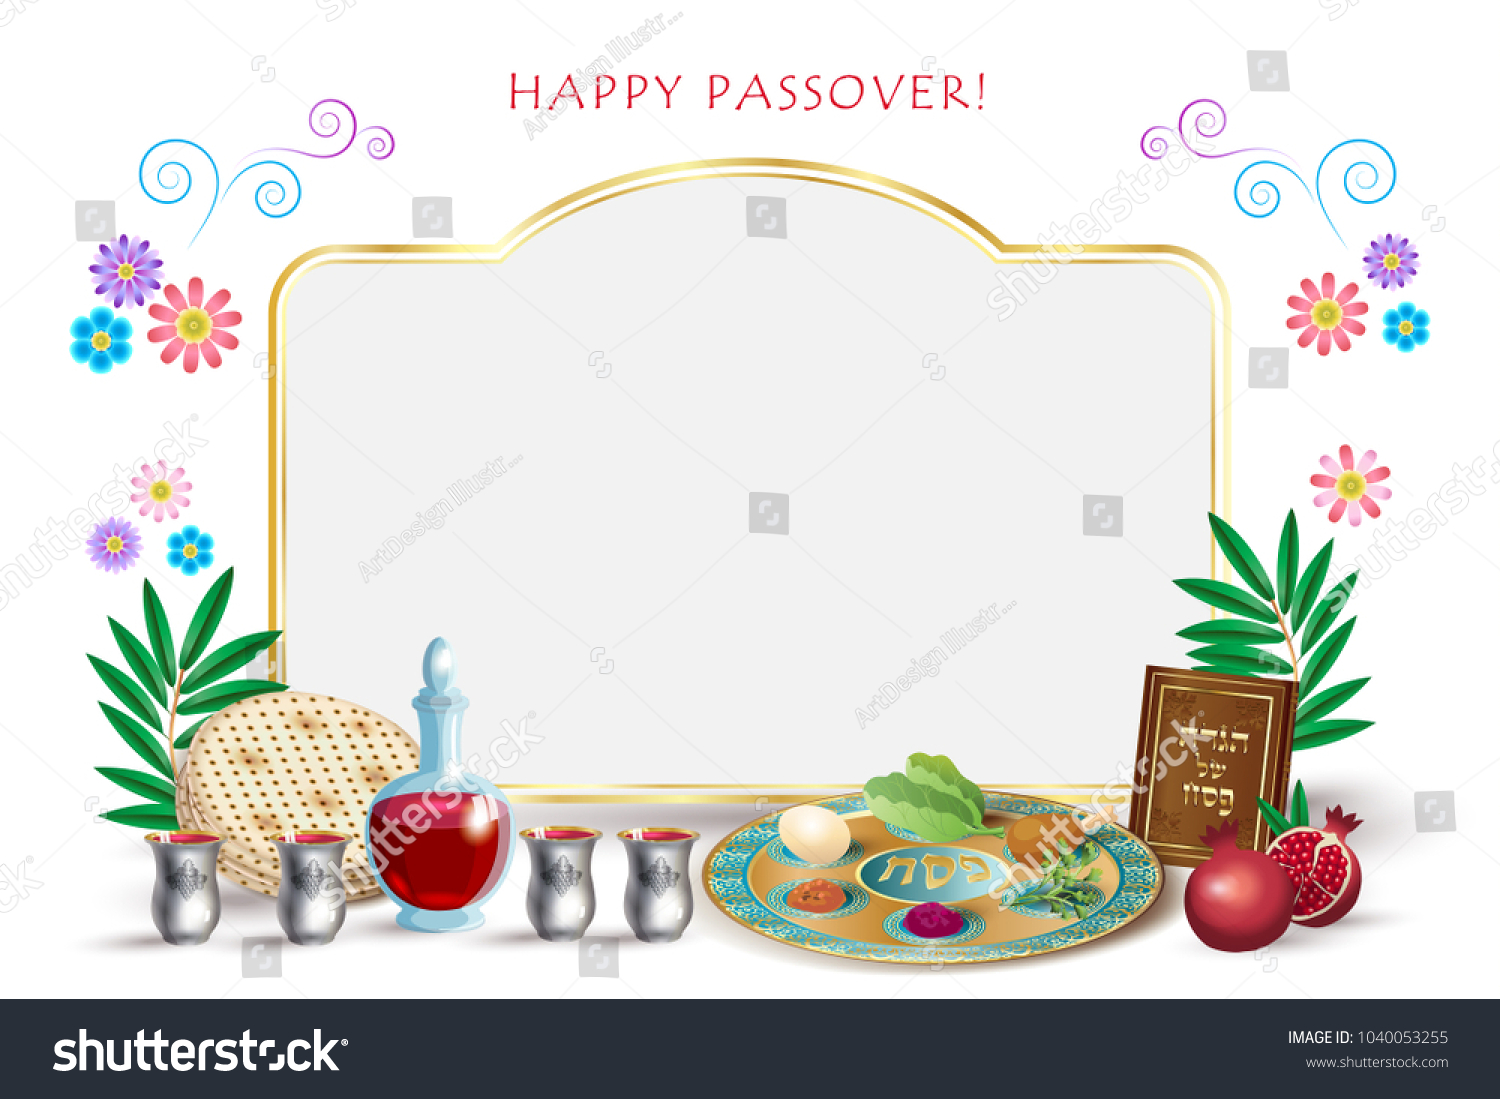 Happy Passover Holiday Greeting Card Passover Stock Vector Royalty